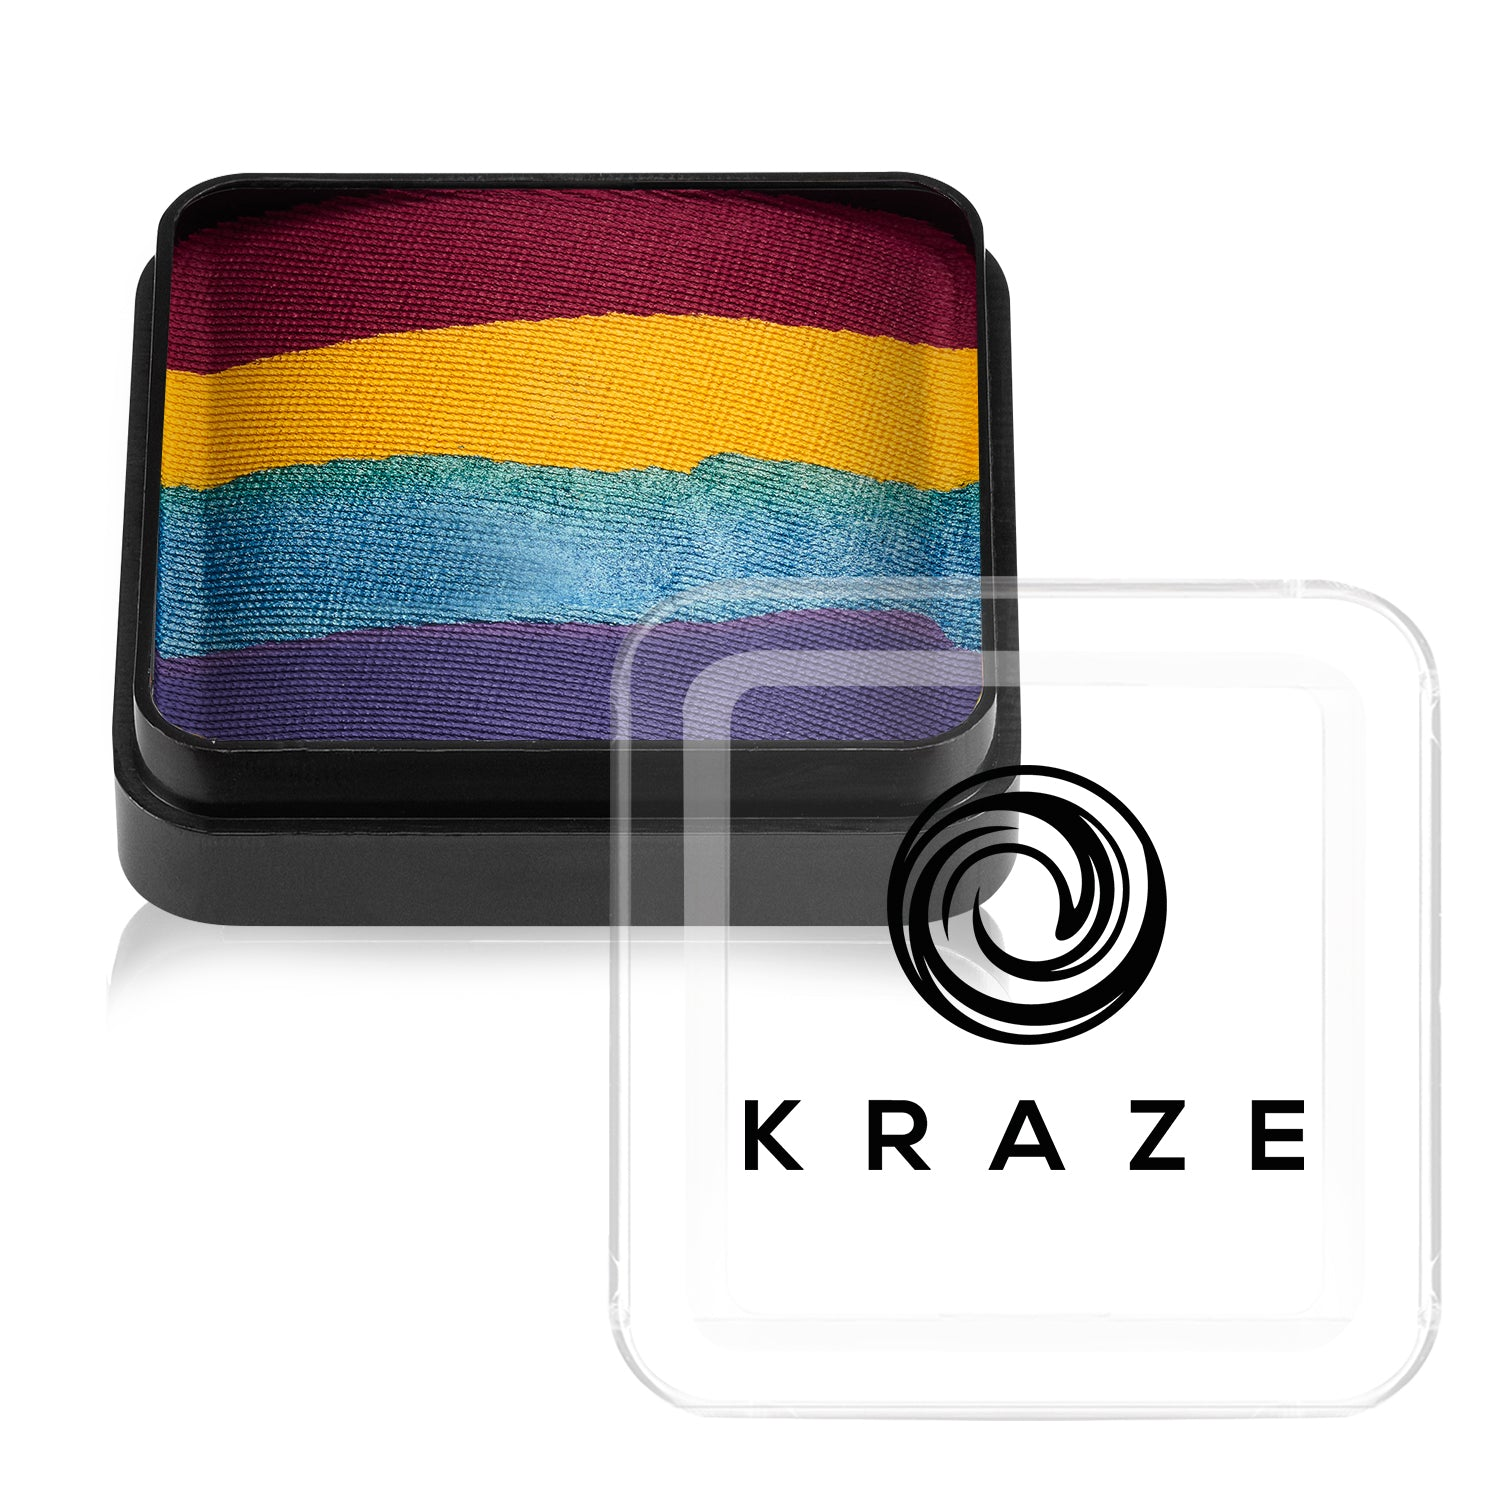 Kraze FX Domed Split Cake - 25 gm - Harbor Sunset